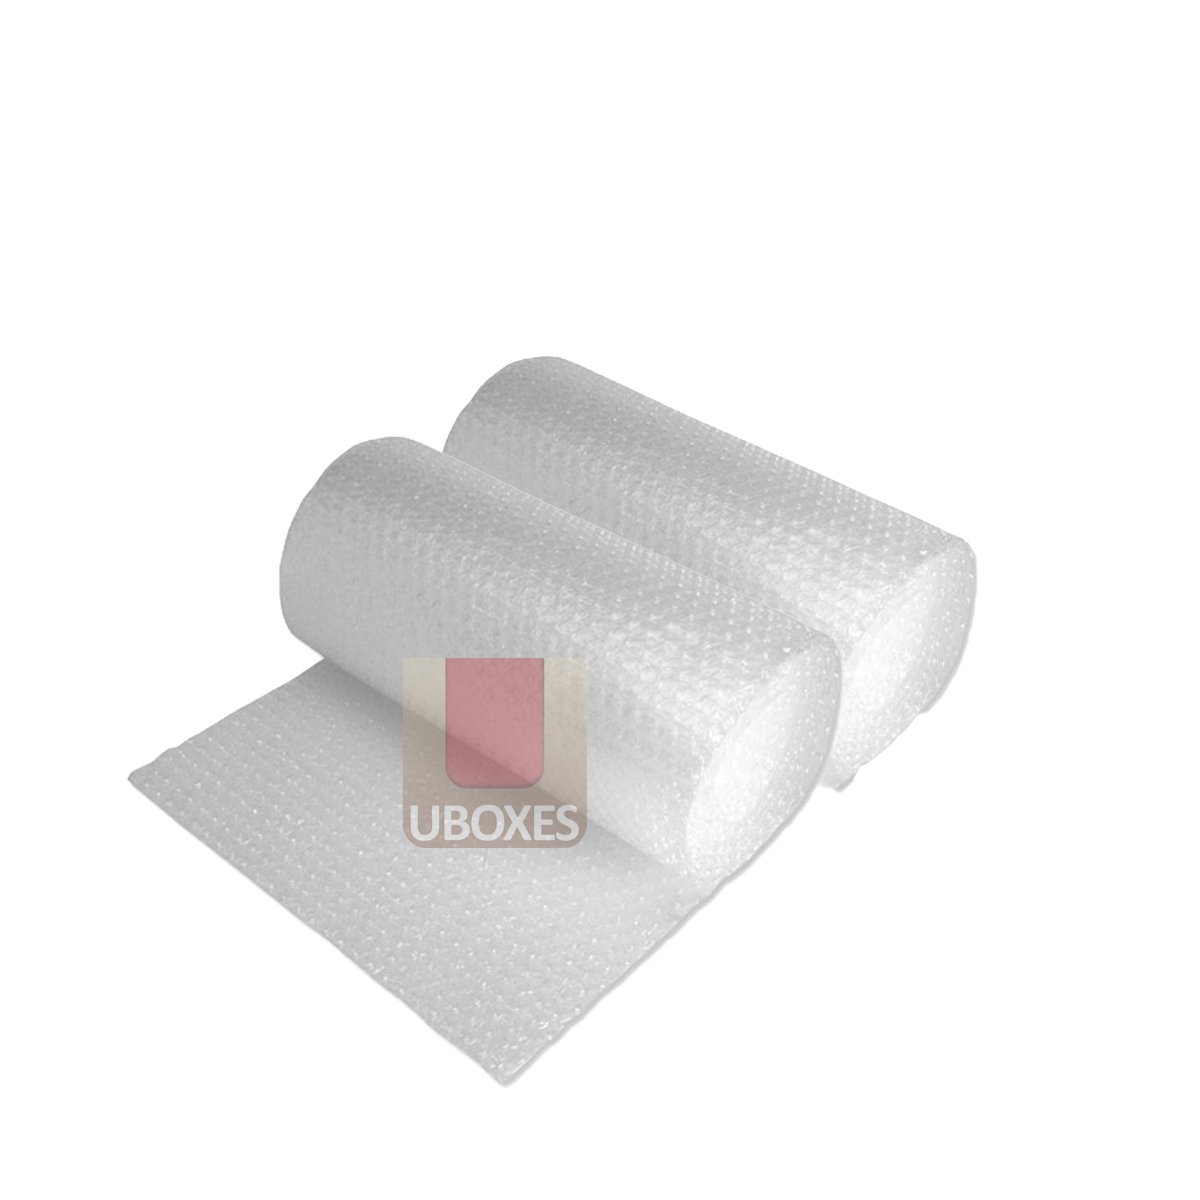 "UBOXES Bubble Cushioning Wrap Small 3/16"" Thick air Bubbles Easy Tears every 12"" (24' - 2 Rolls)"